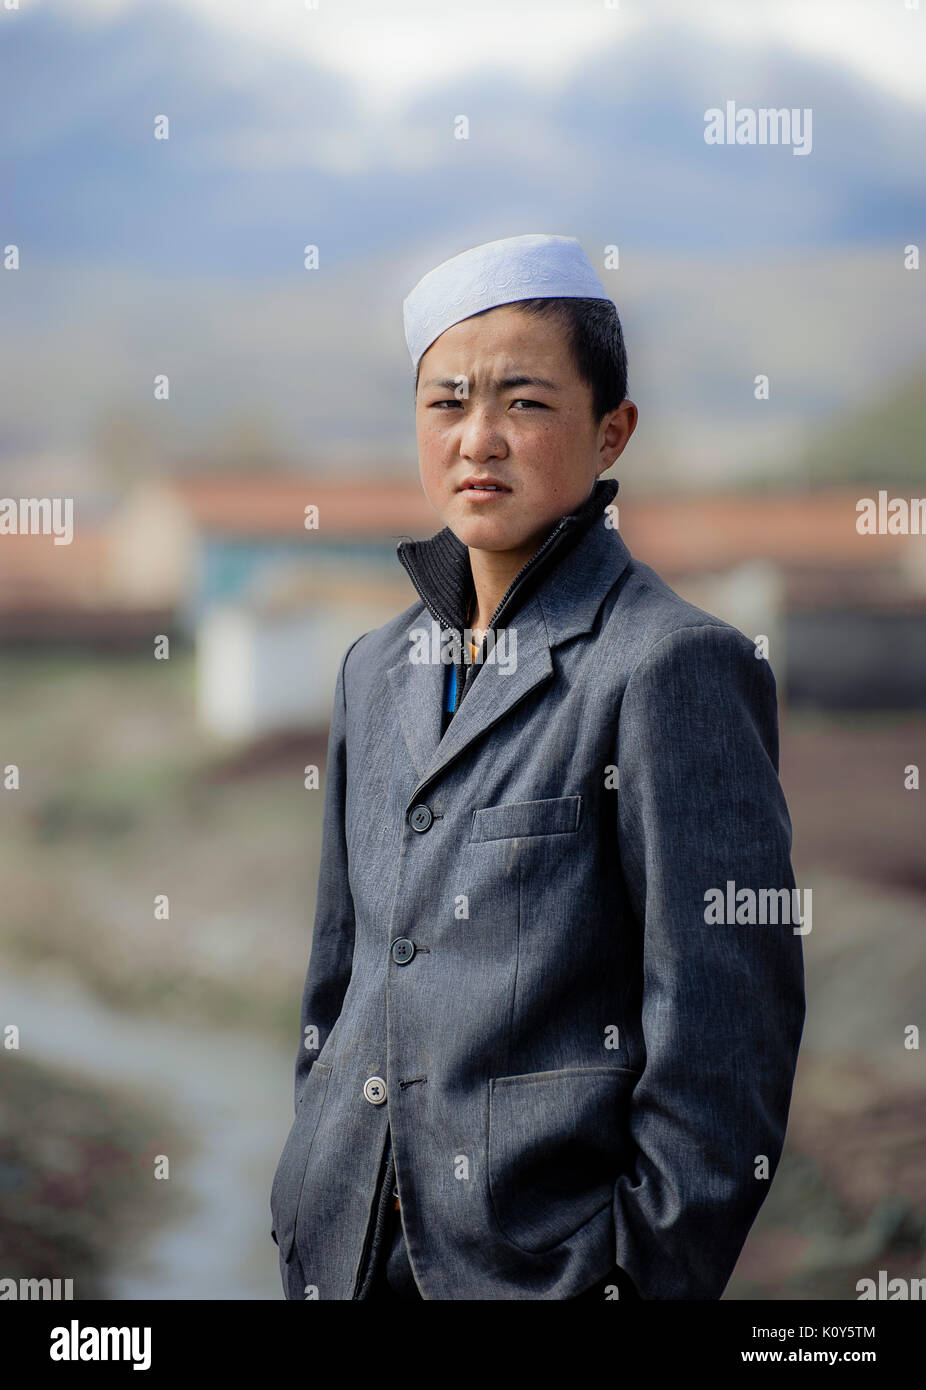 A teenager from the Hui ethnic minority of China. - Stock Image